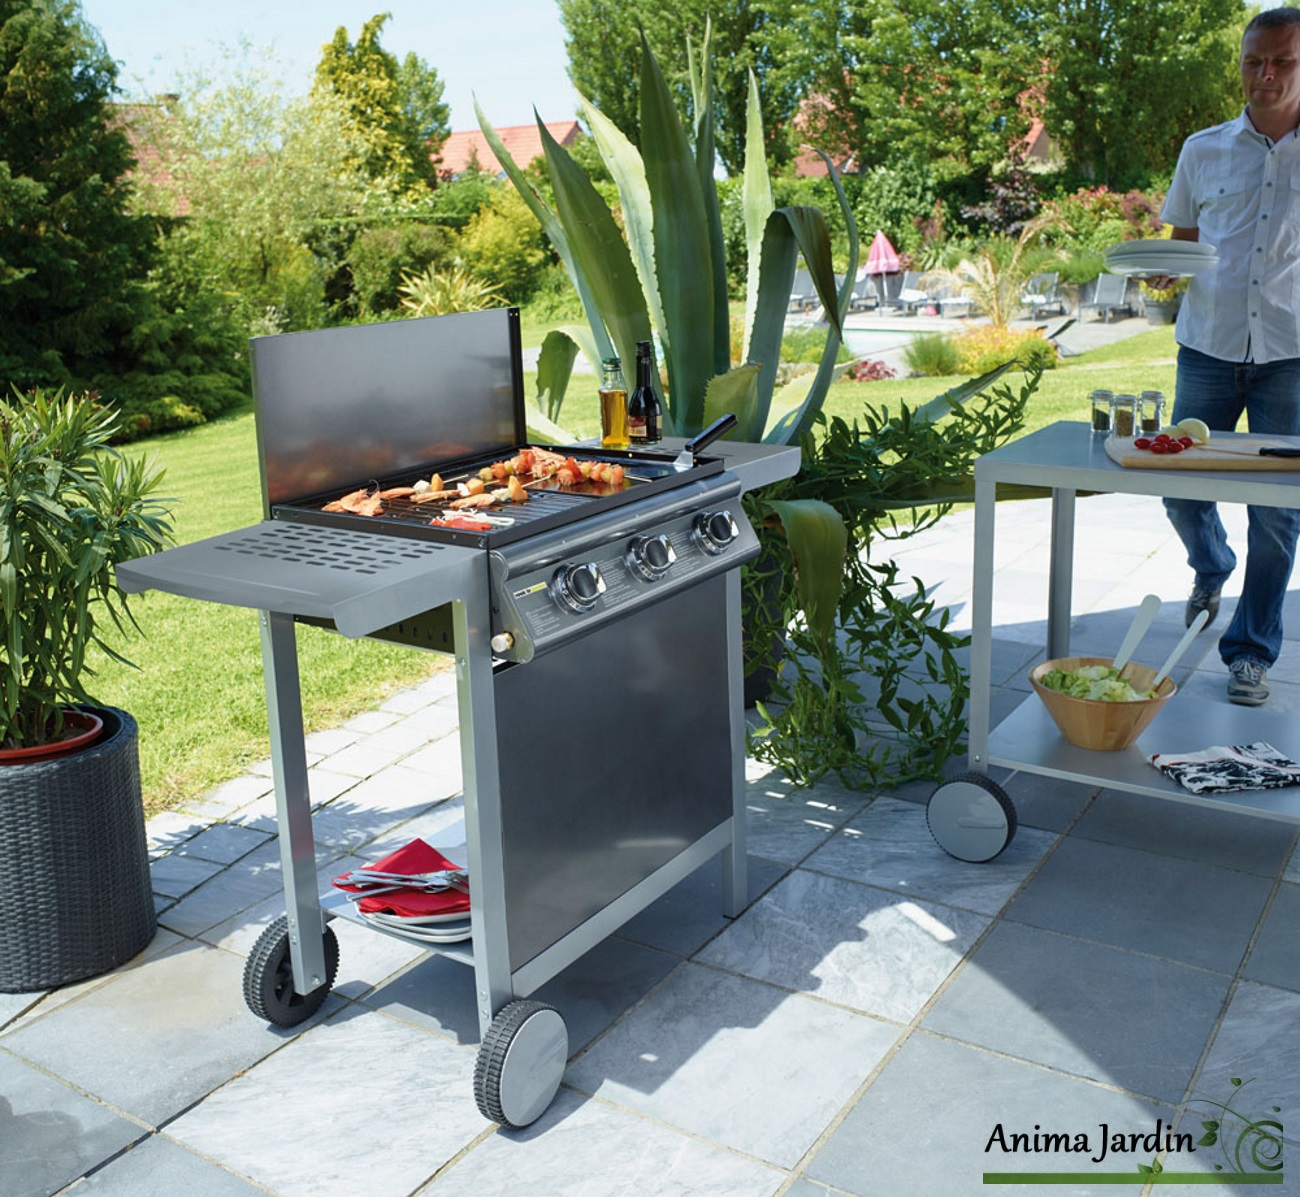 Barbecue-Puerta Luna-Barbecue gaz-Barbecue australien-Anima-Jardin.fr